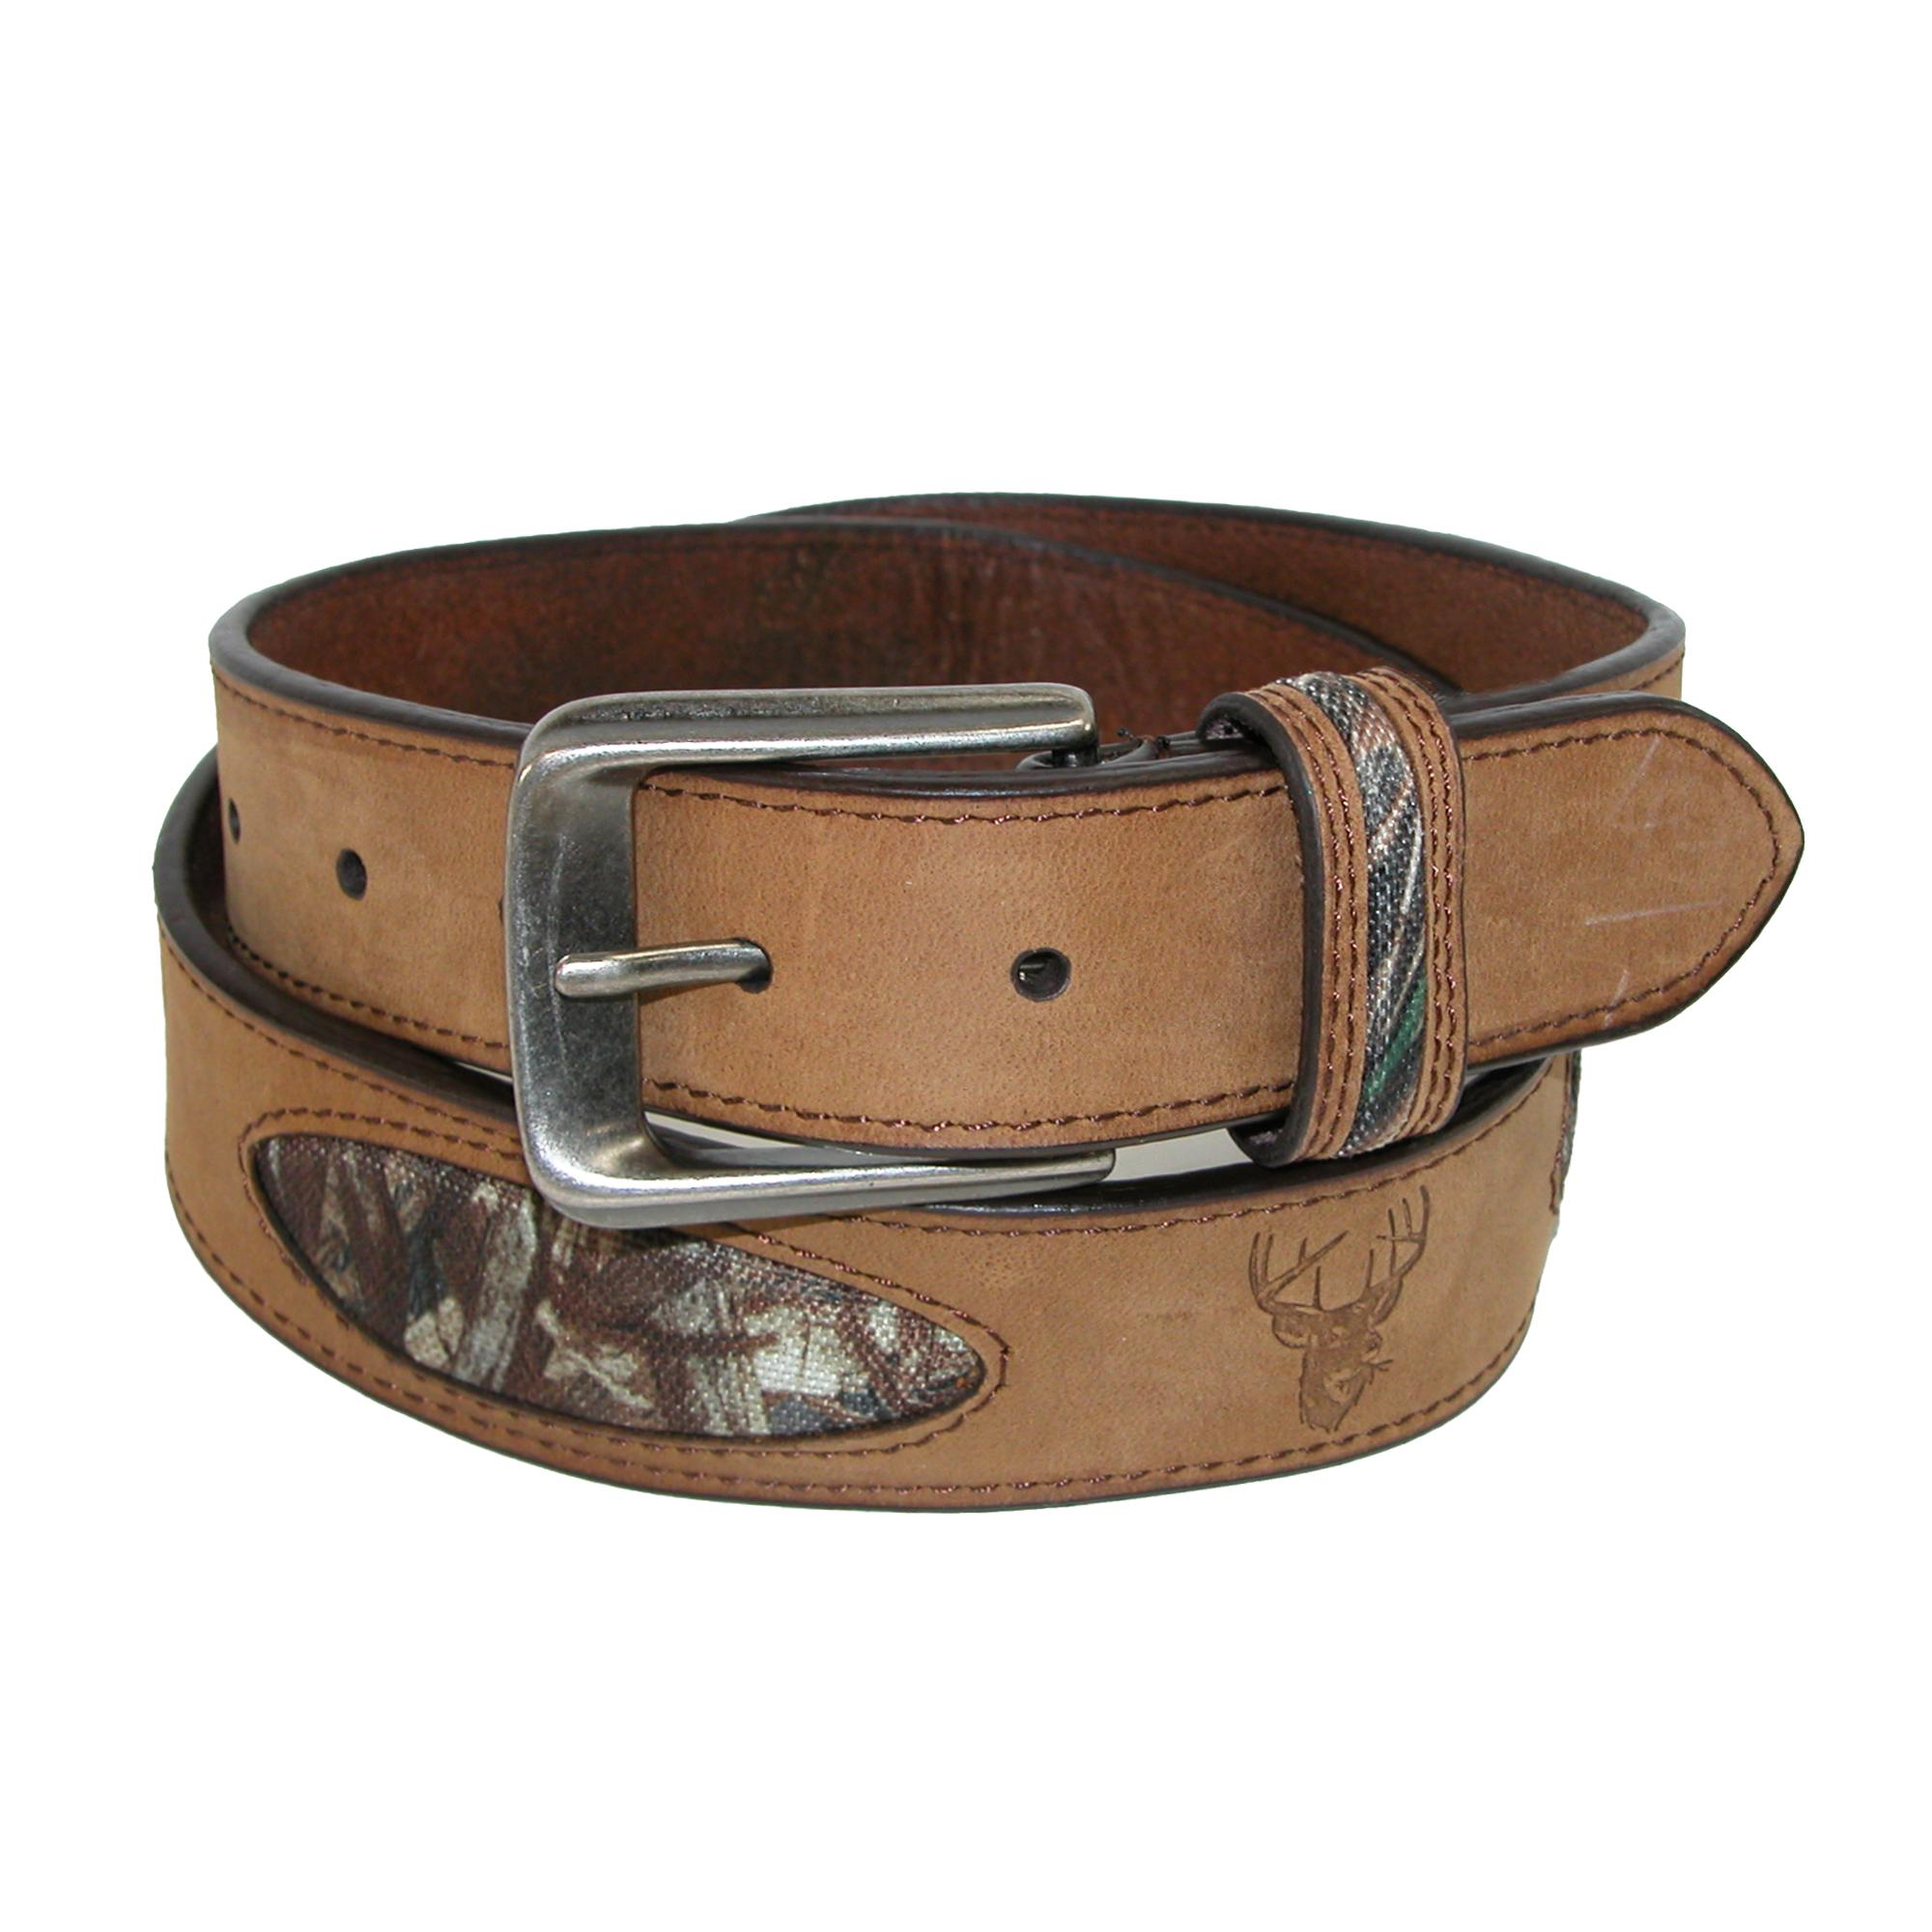 Hickory Creek Mens Crazy Horse Leather With Camo Inlays Deer Embossed Belt